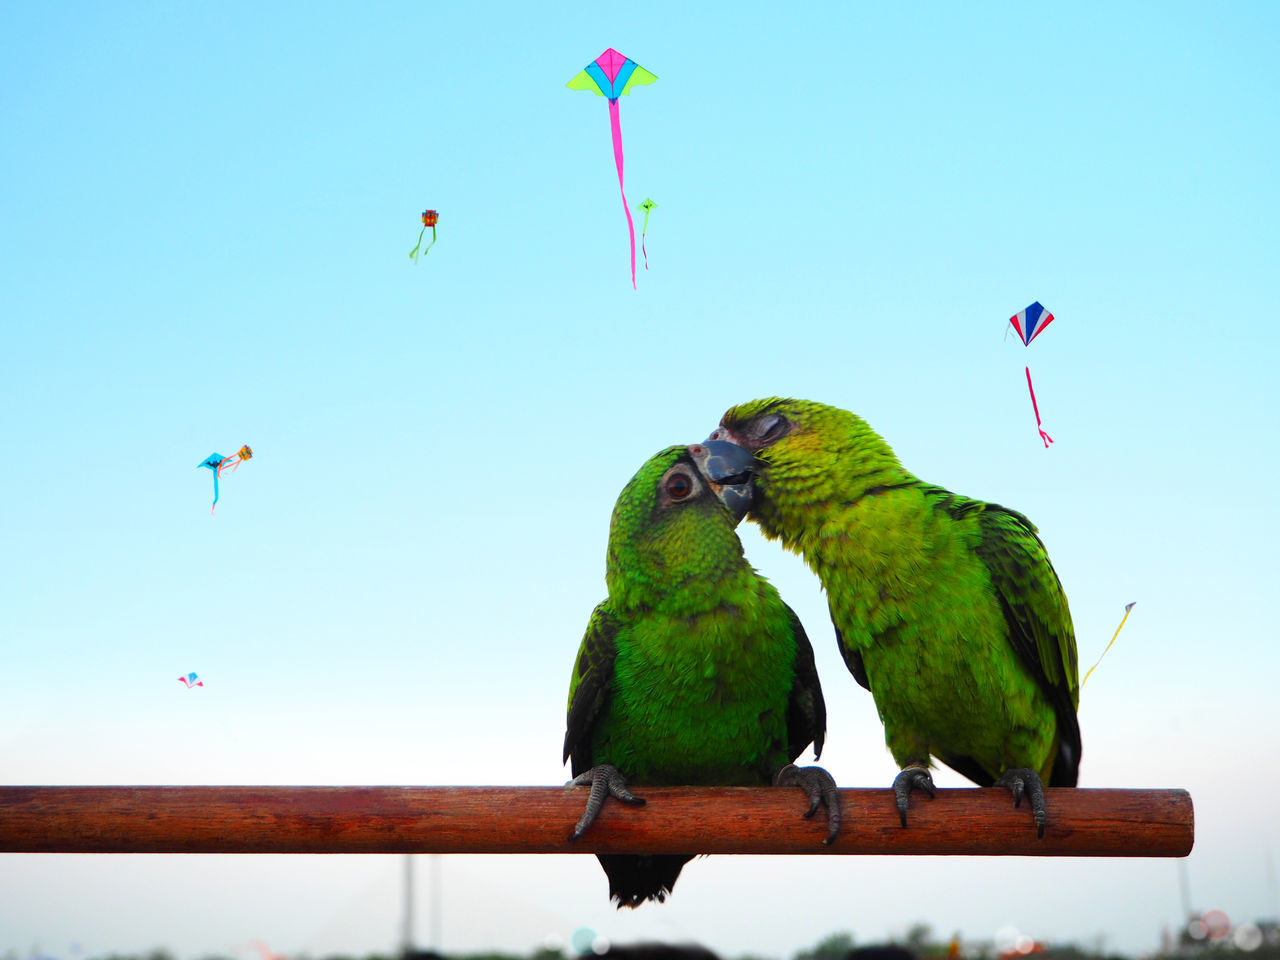 💚The lover💚 Summer Animals Bird Blue Sky Capture The Moment Bangkok Day Exceptional Photographs Spotted In Thailand Kite Love Low Angle View Multi Colored Parrot Perching Recreational Pursuit Tadaa Community Thailand Travel Traveling Wildlife The Great Outdoors - 2016 EyeEm Awards Colour Of Life The City Light Sommergefühle